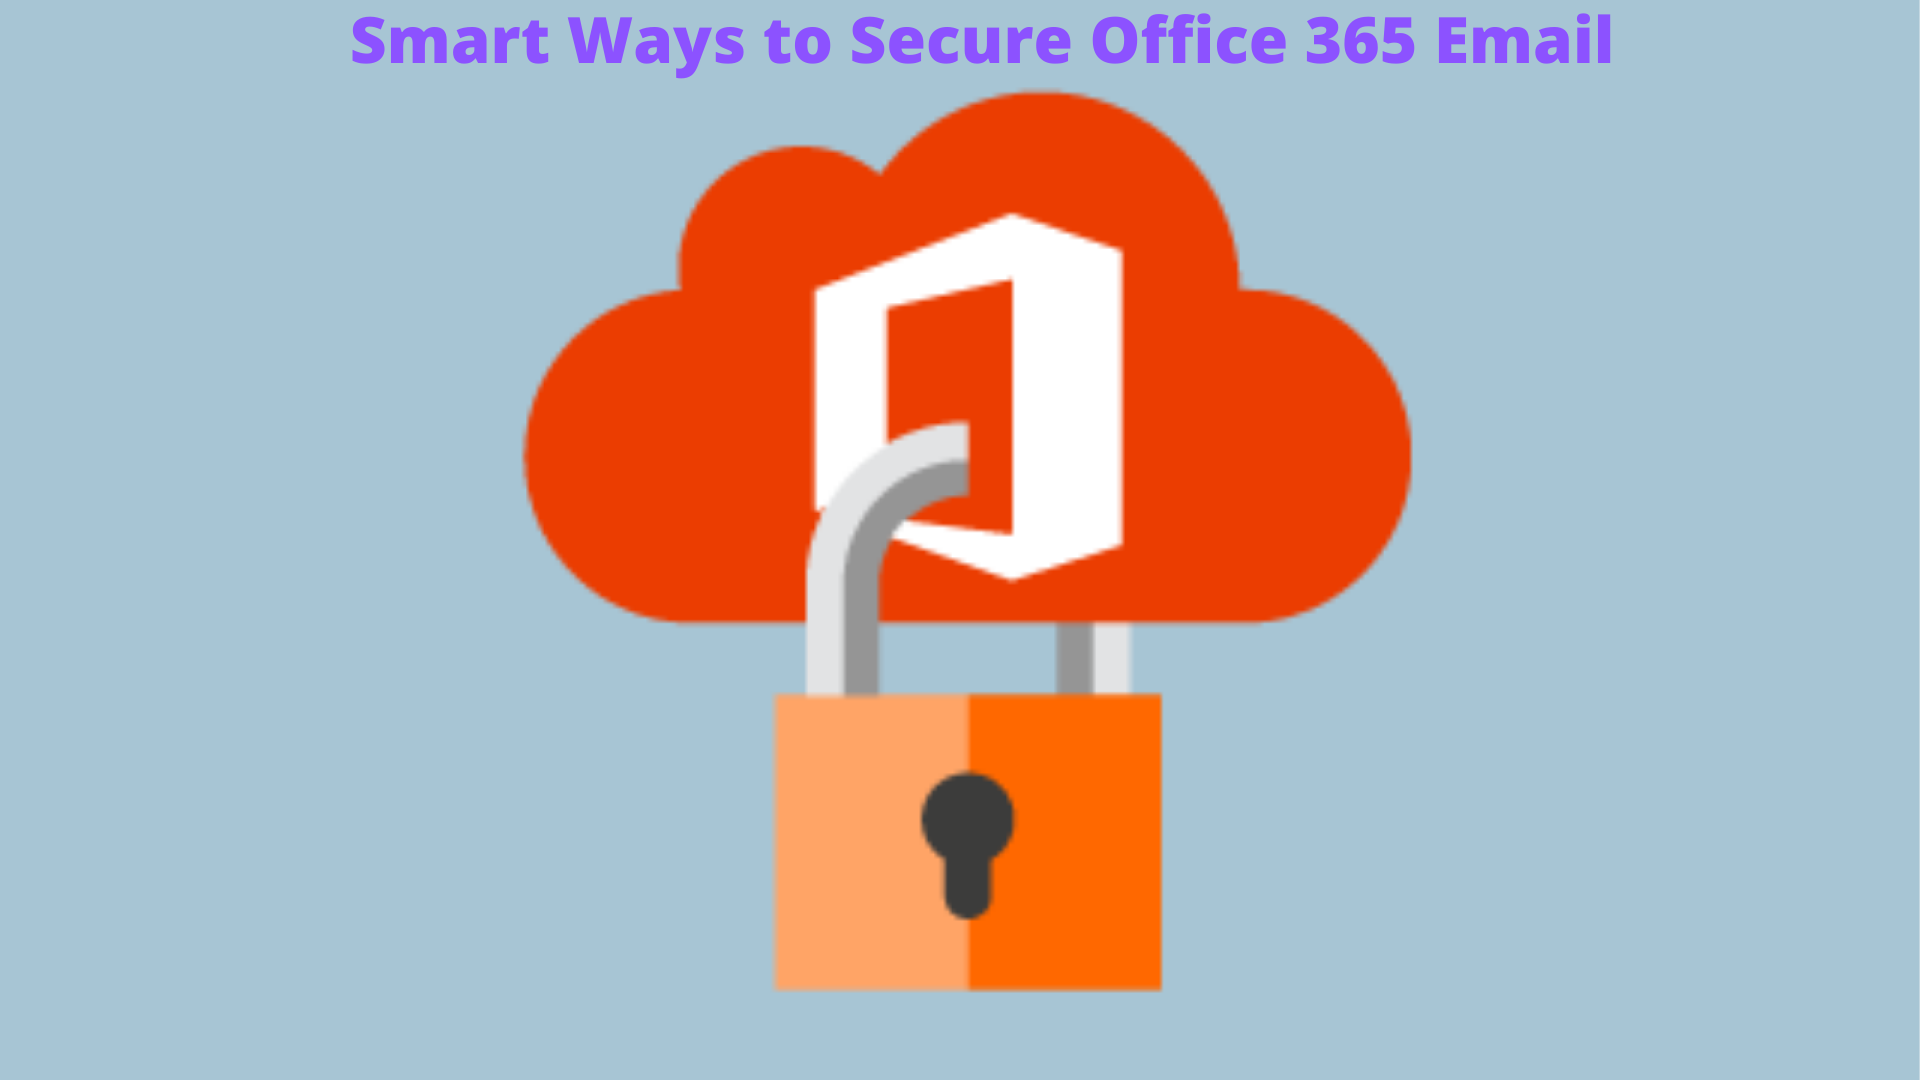 How to Secure Your Office 365 Account